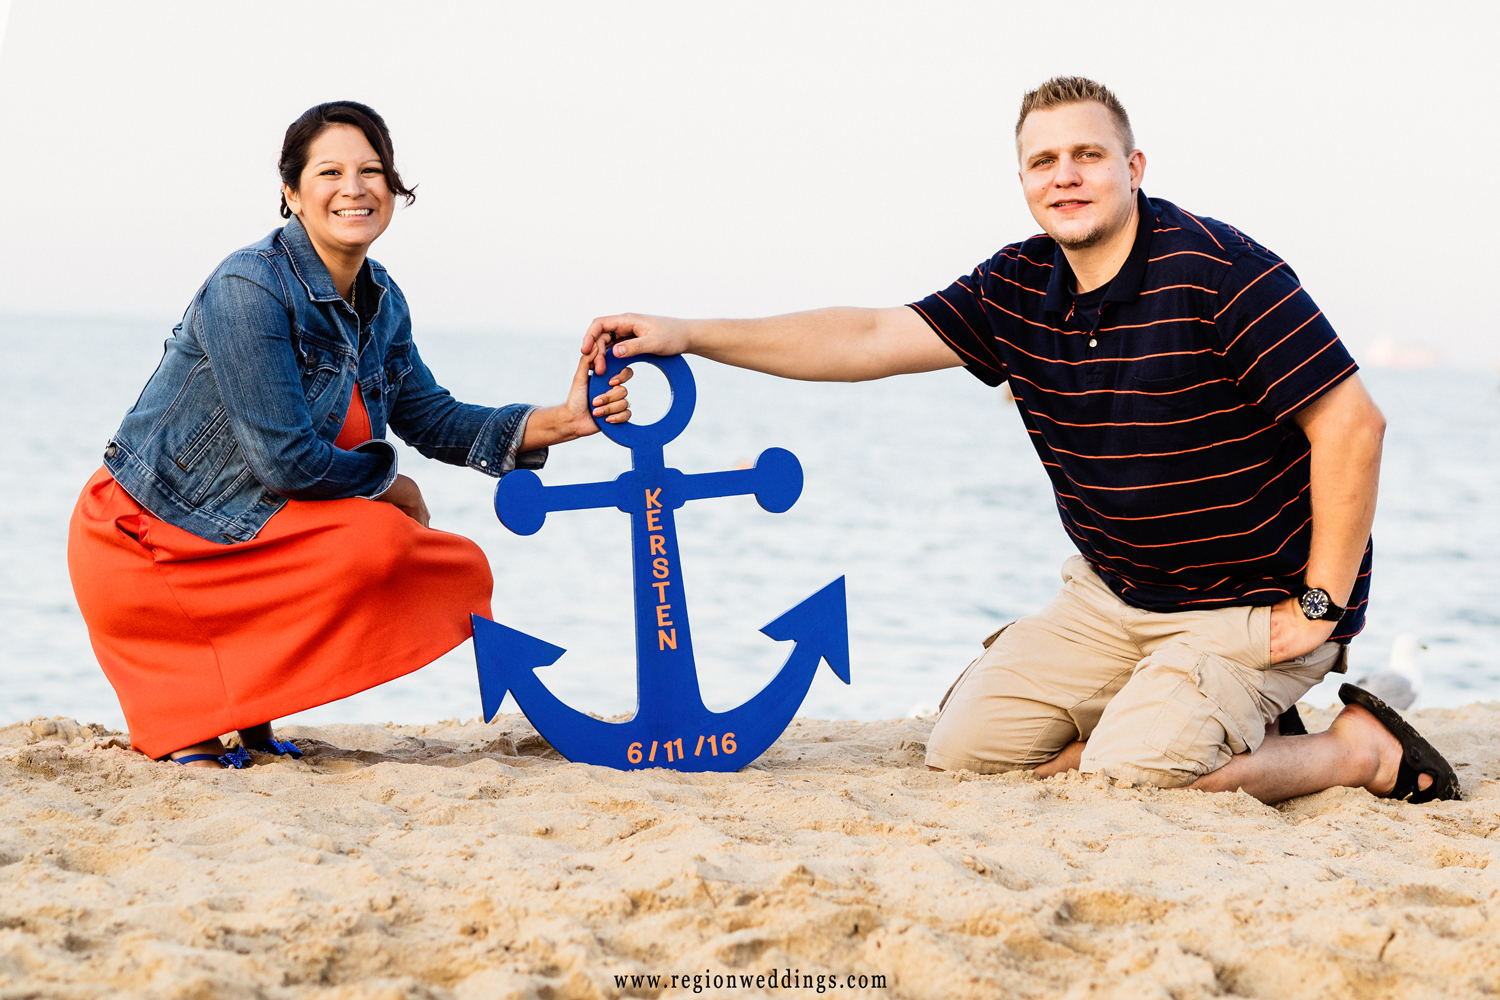 An engaged couple displays their wedding date on a boat anchor at North Avenue Beach in Chicago..